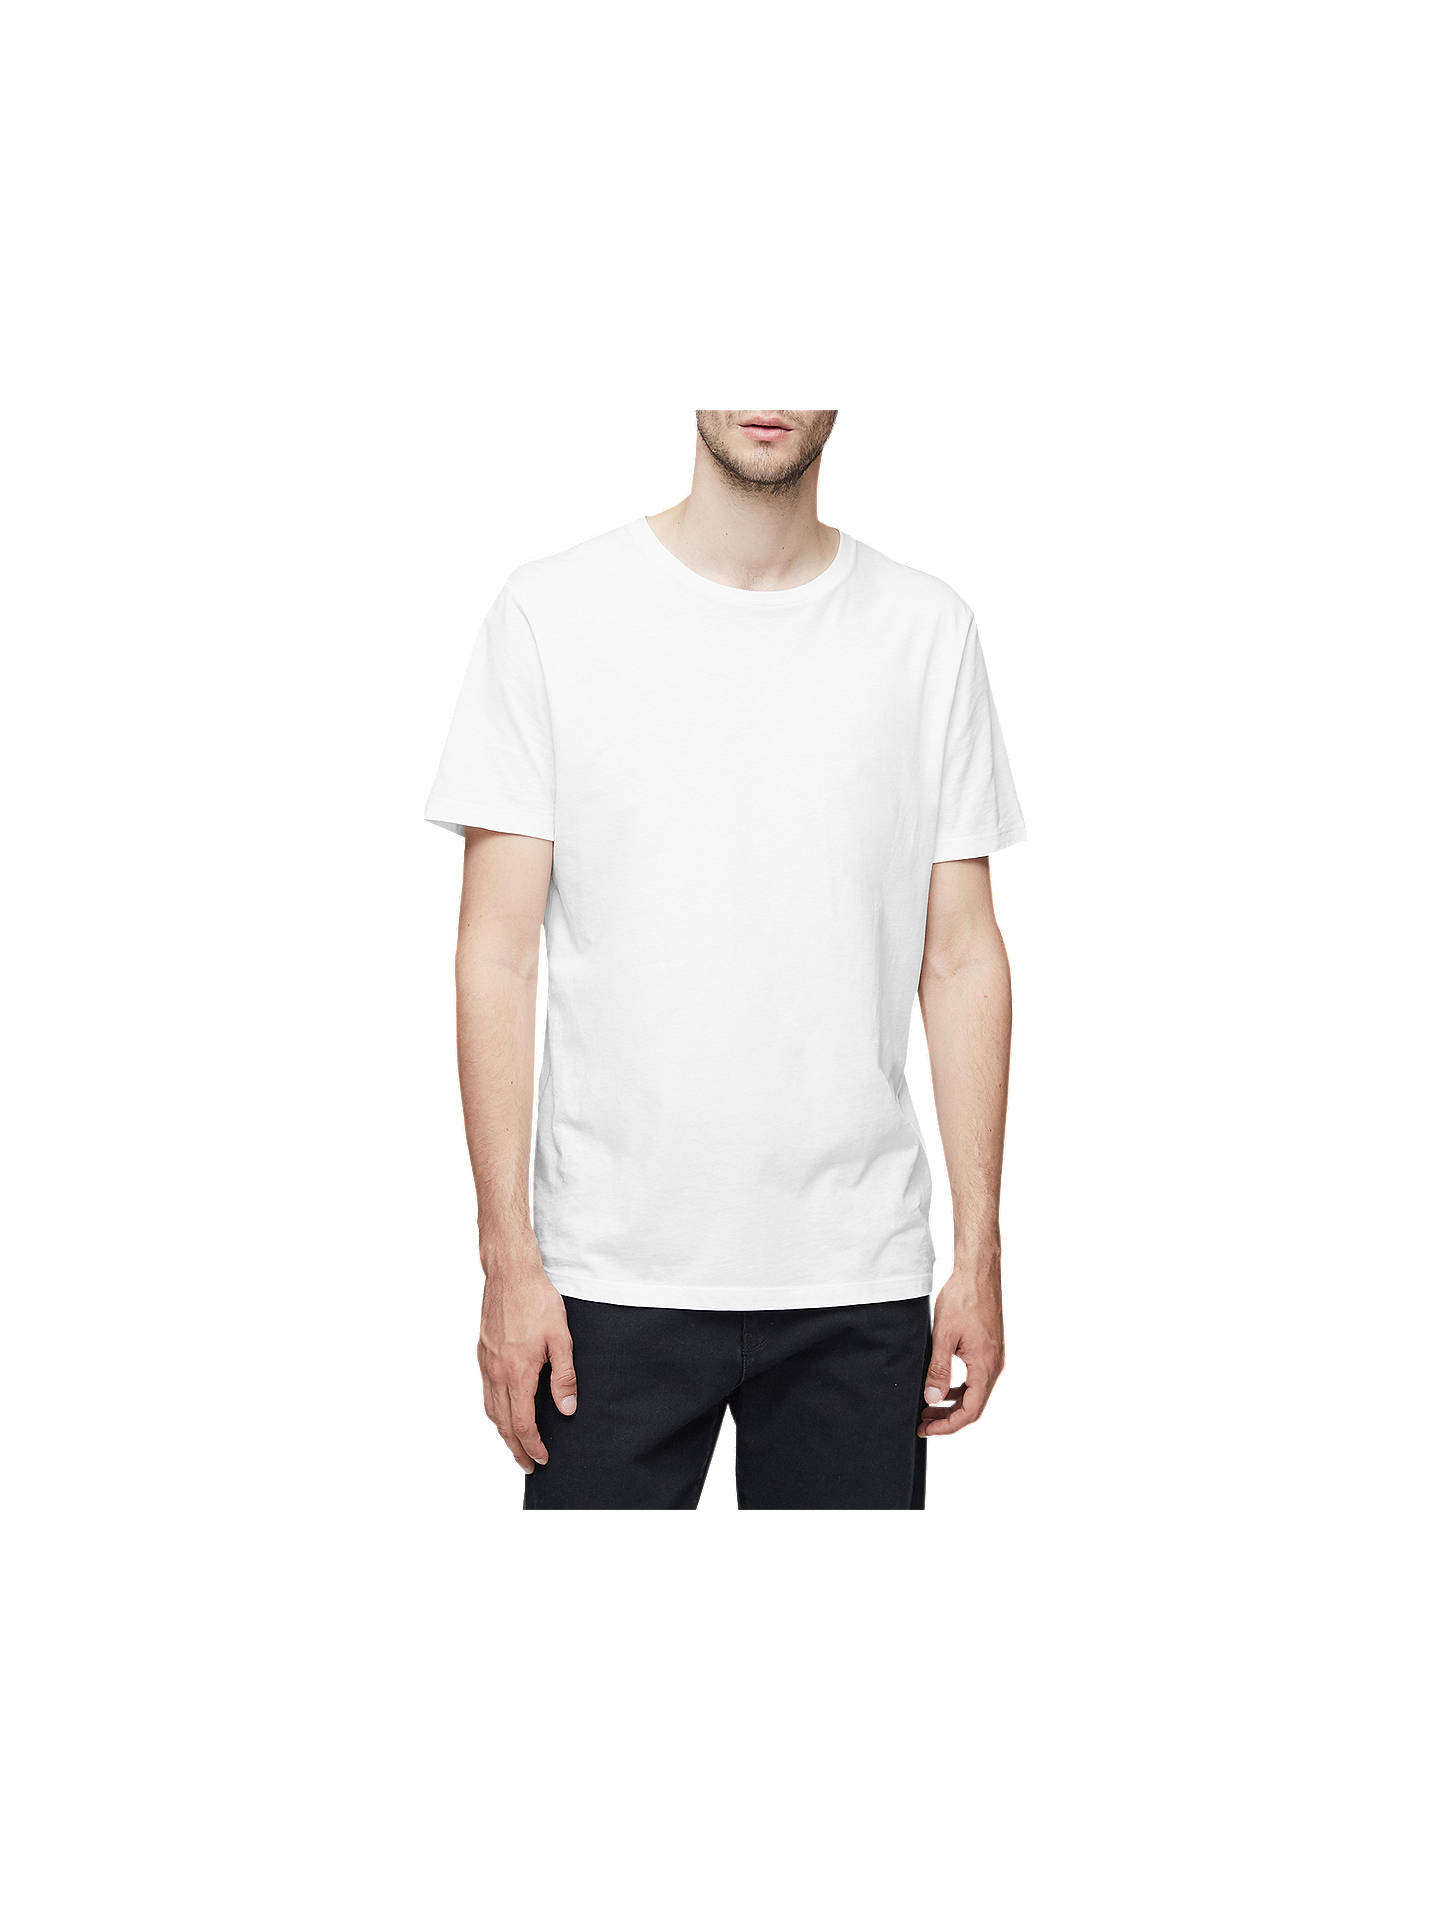 BuyReiss Bless Cotton Crew Neck T-Shirt, White, S Online at johnlewis.com